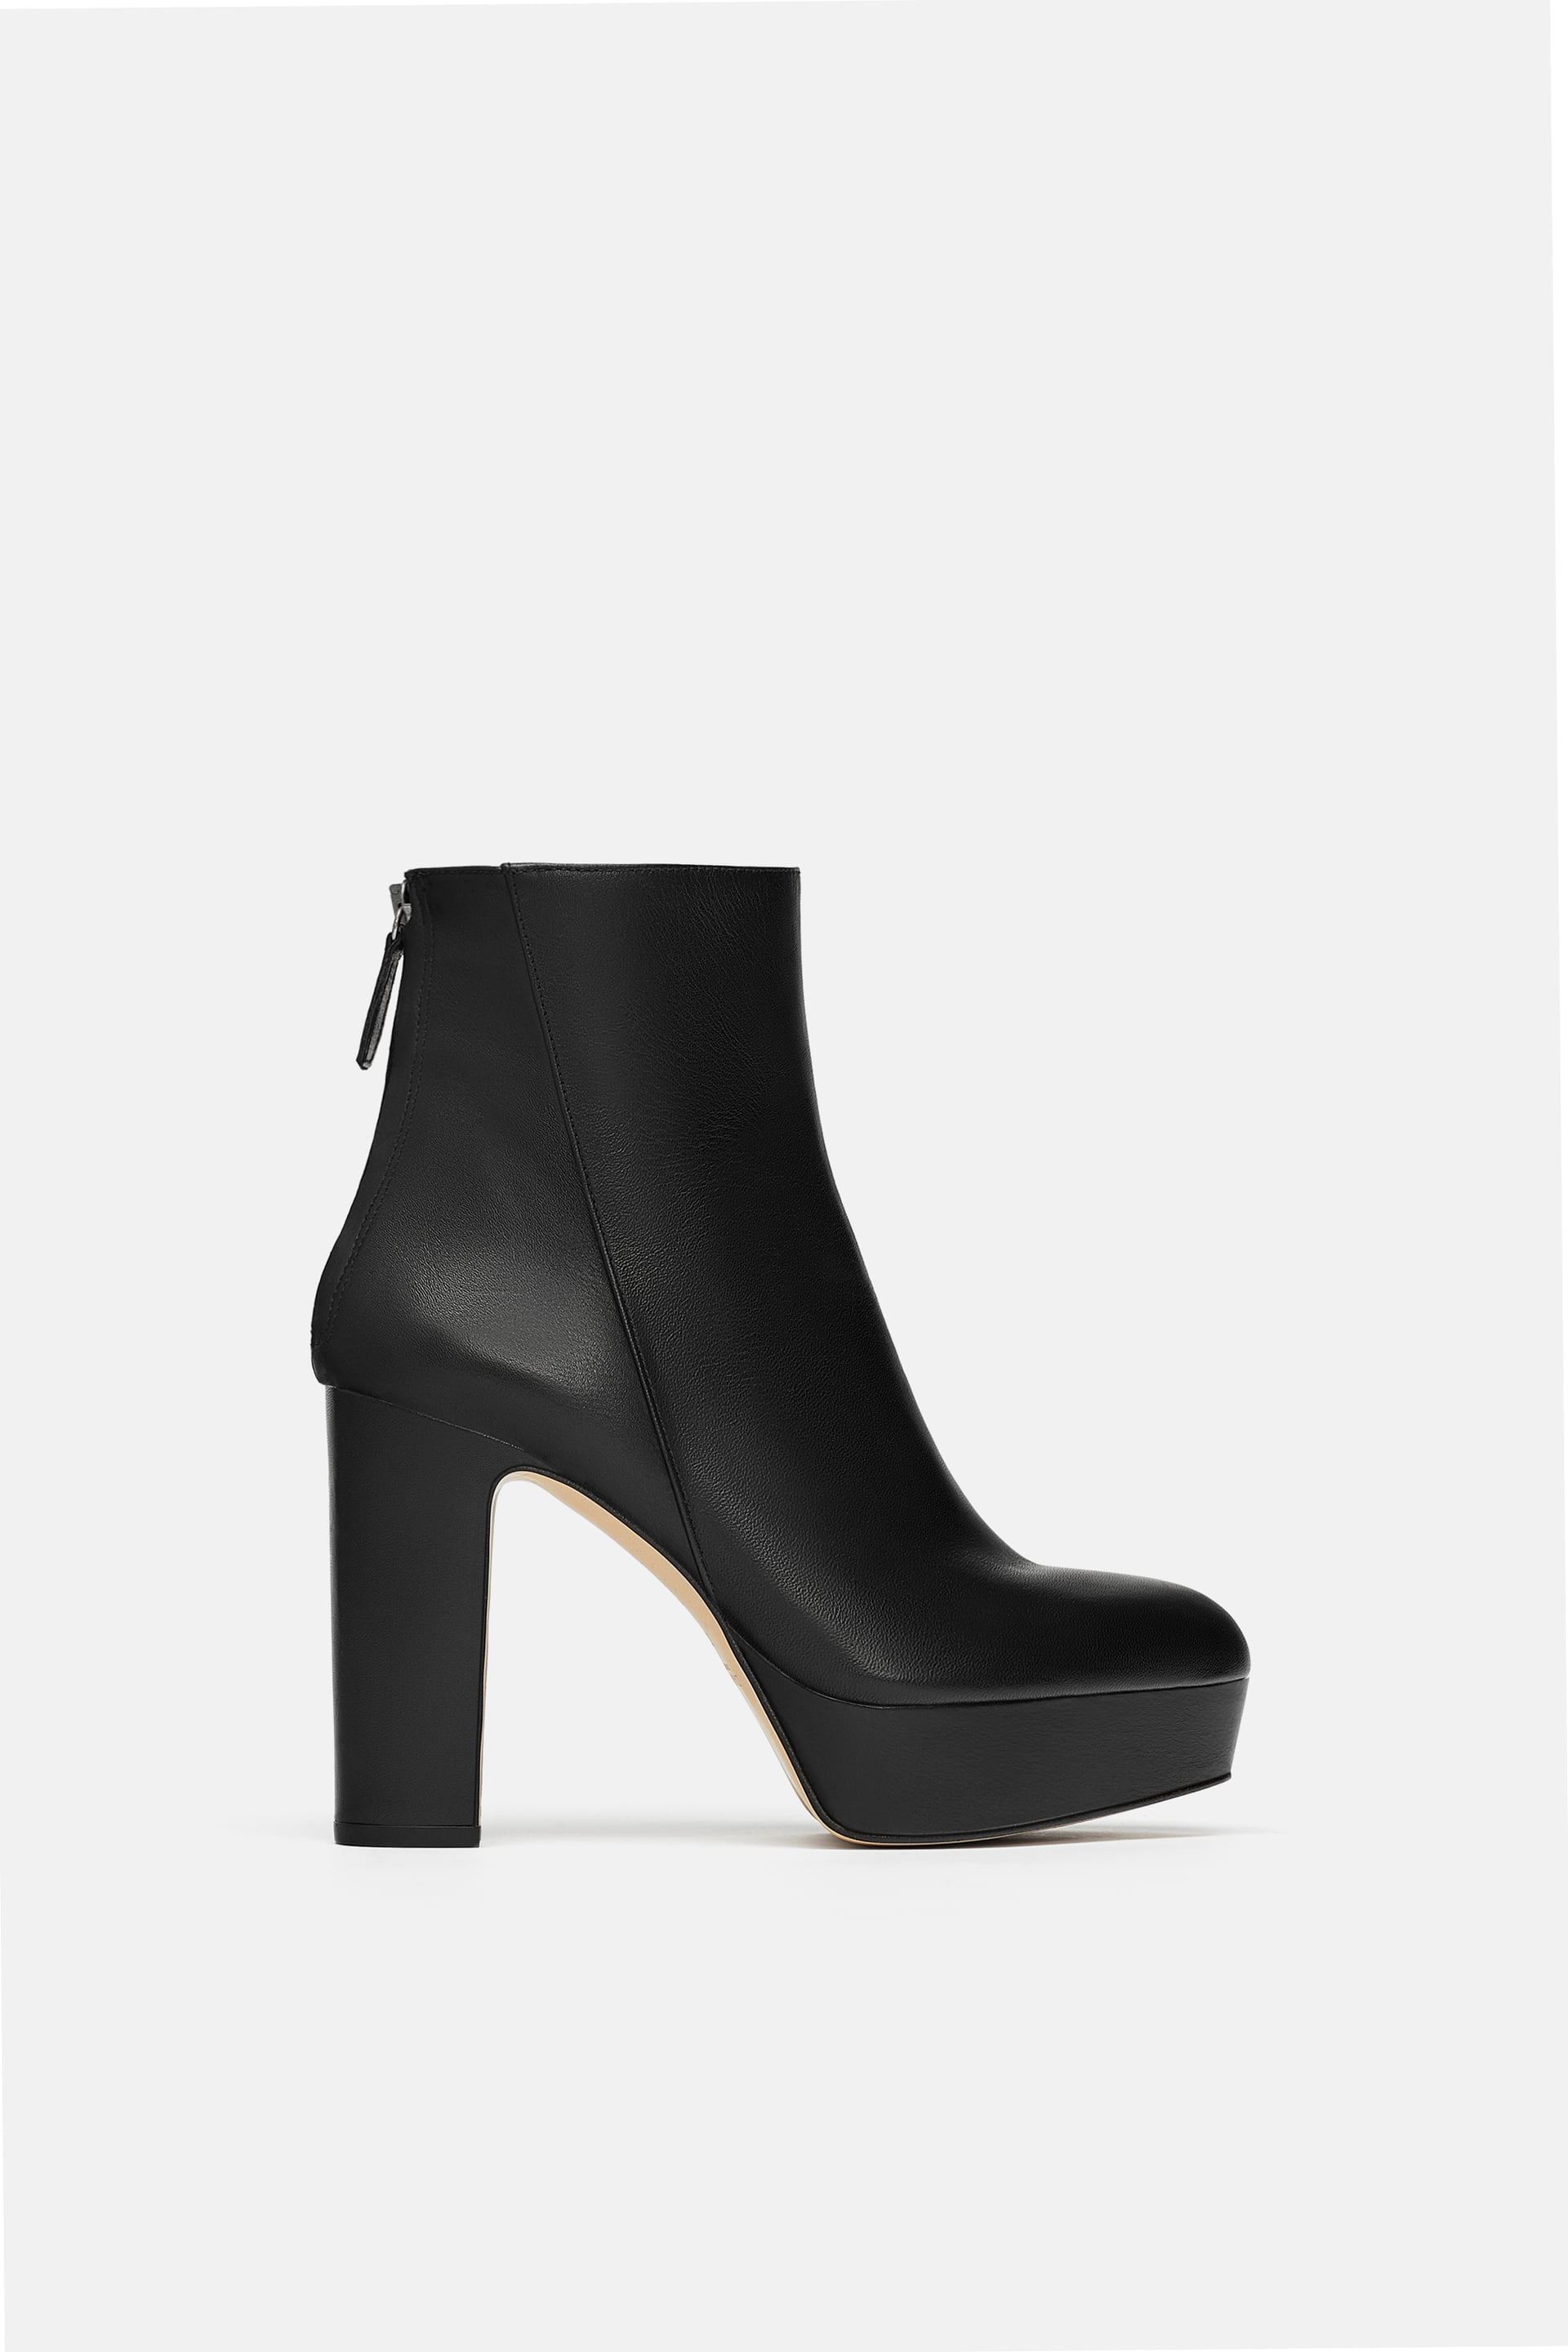 Zara Leather High Heel Platform Boot